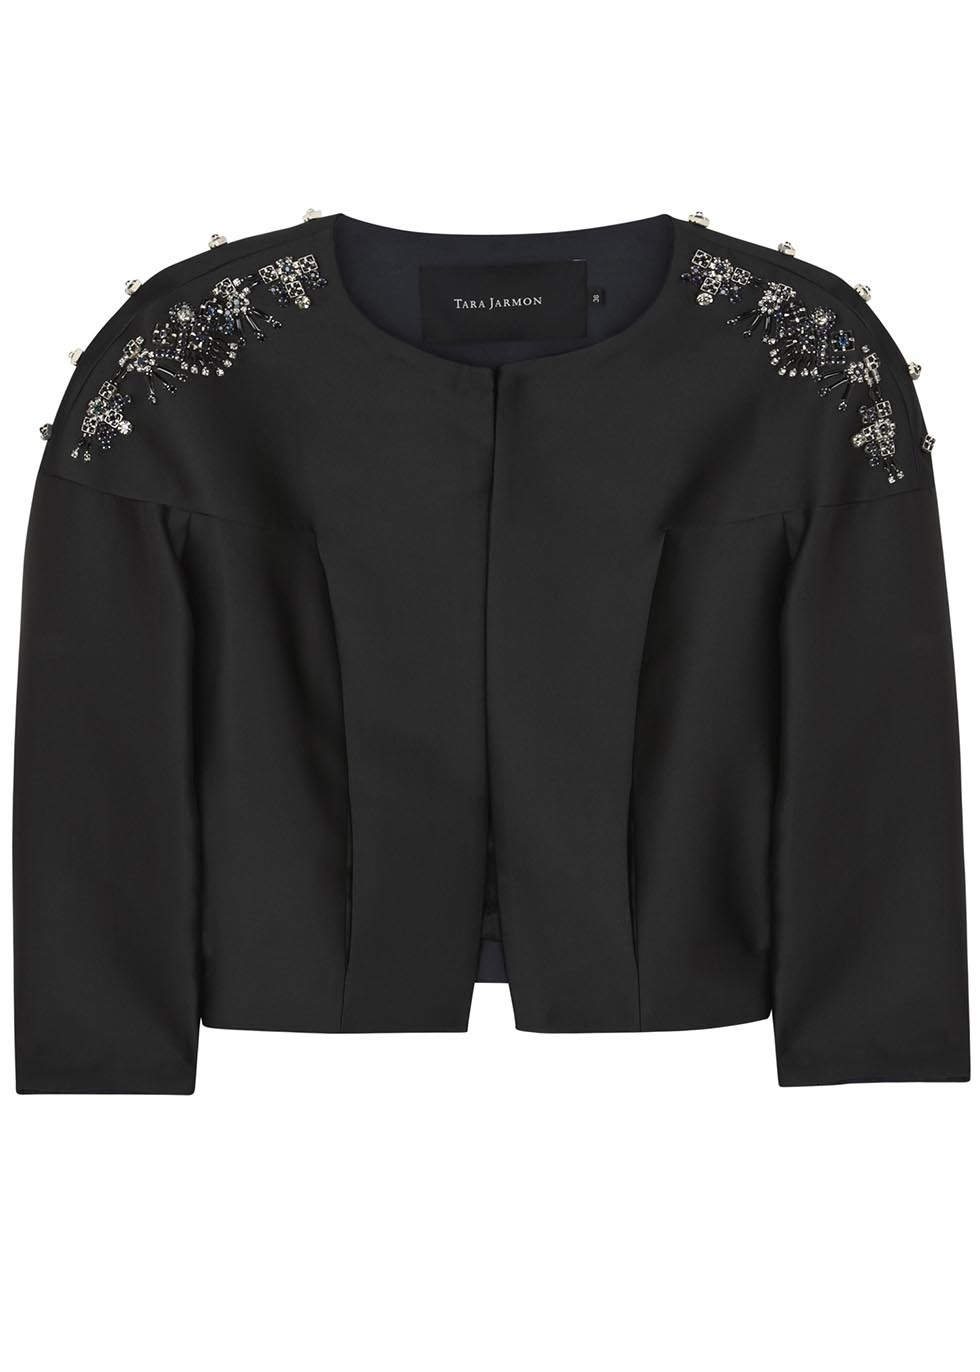 Black Embellished Satin Twill Jacket - pattern: plain; collar: round collar/collarless; style: boxy; predominant colour: black; occasions: evening, occasion; fit: straight cut (boxy); fibres: polyester/polyamide - mix; shoulder detail: added shoulder detail; sleeve length: 3/4 length; sleeve style: standard; texture group: structured shiny - satin/tafetta/silk etc.; collar break: high; pattern type: fabric; embellishment: beading; season: s/s 2014; length: cropped